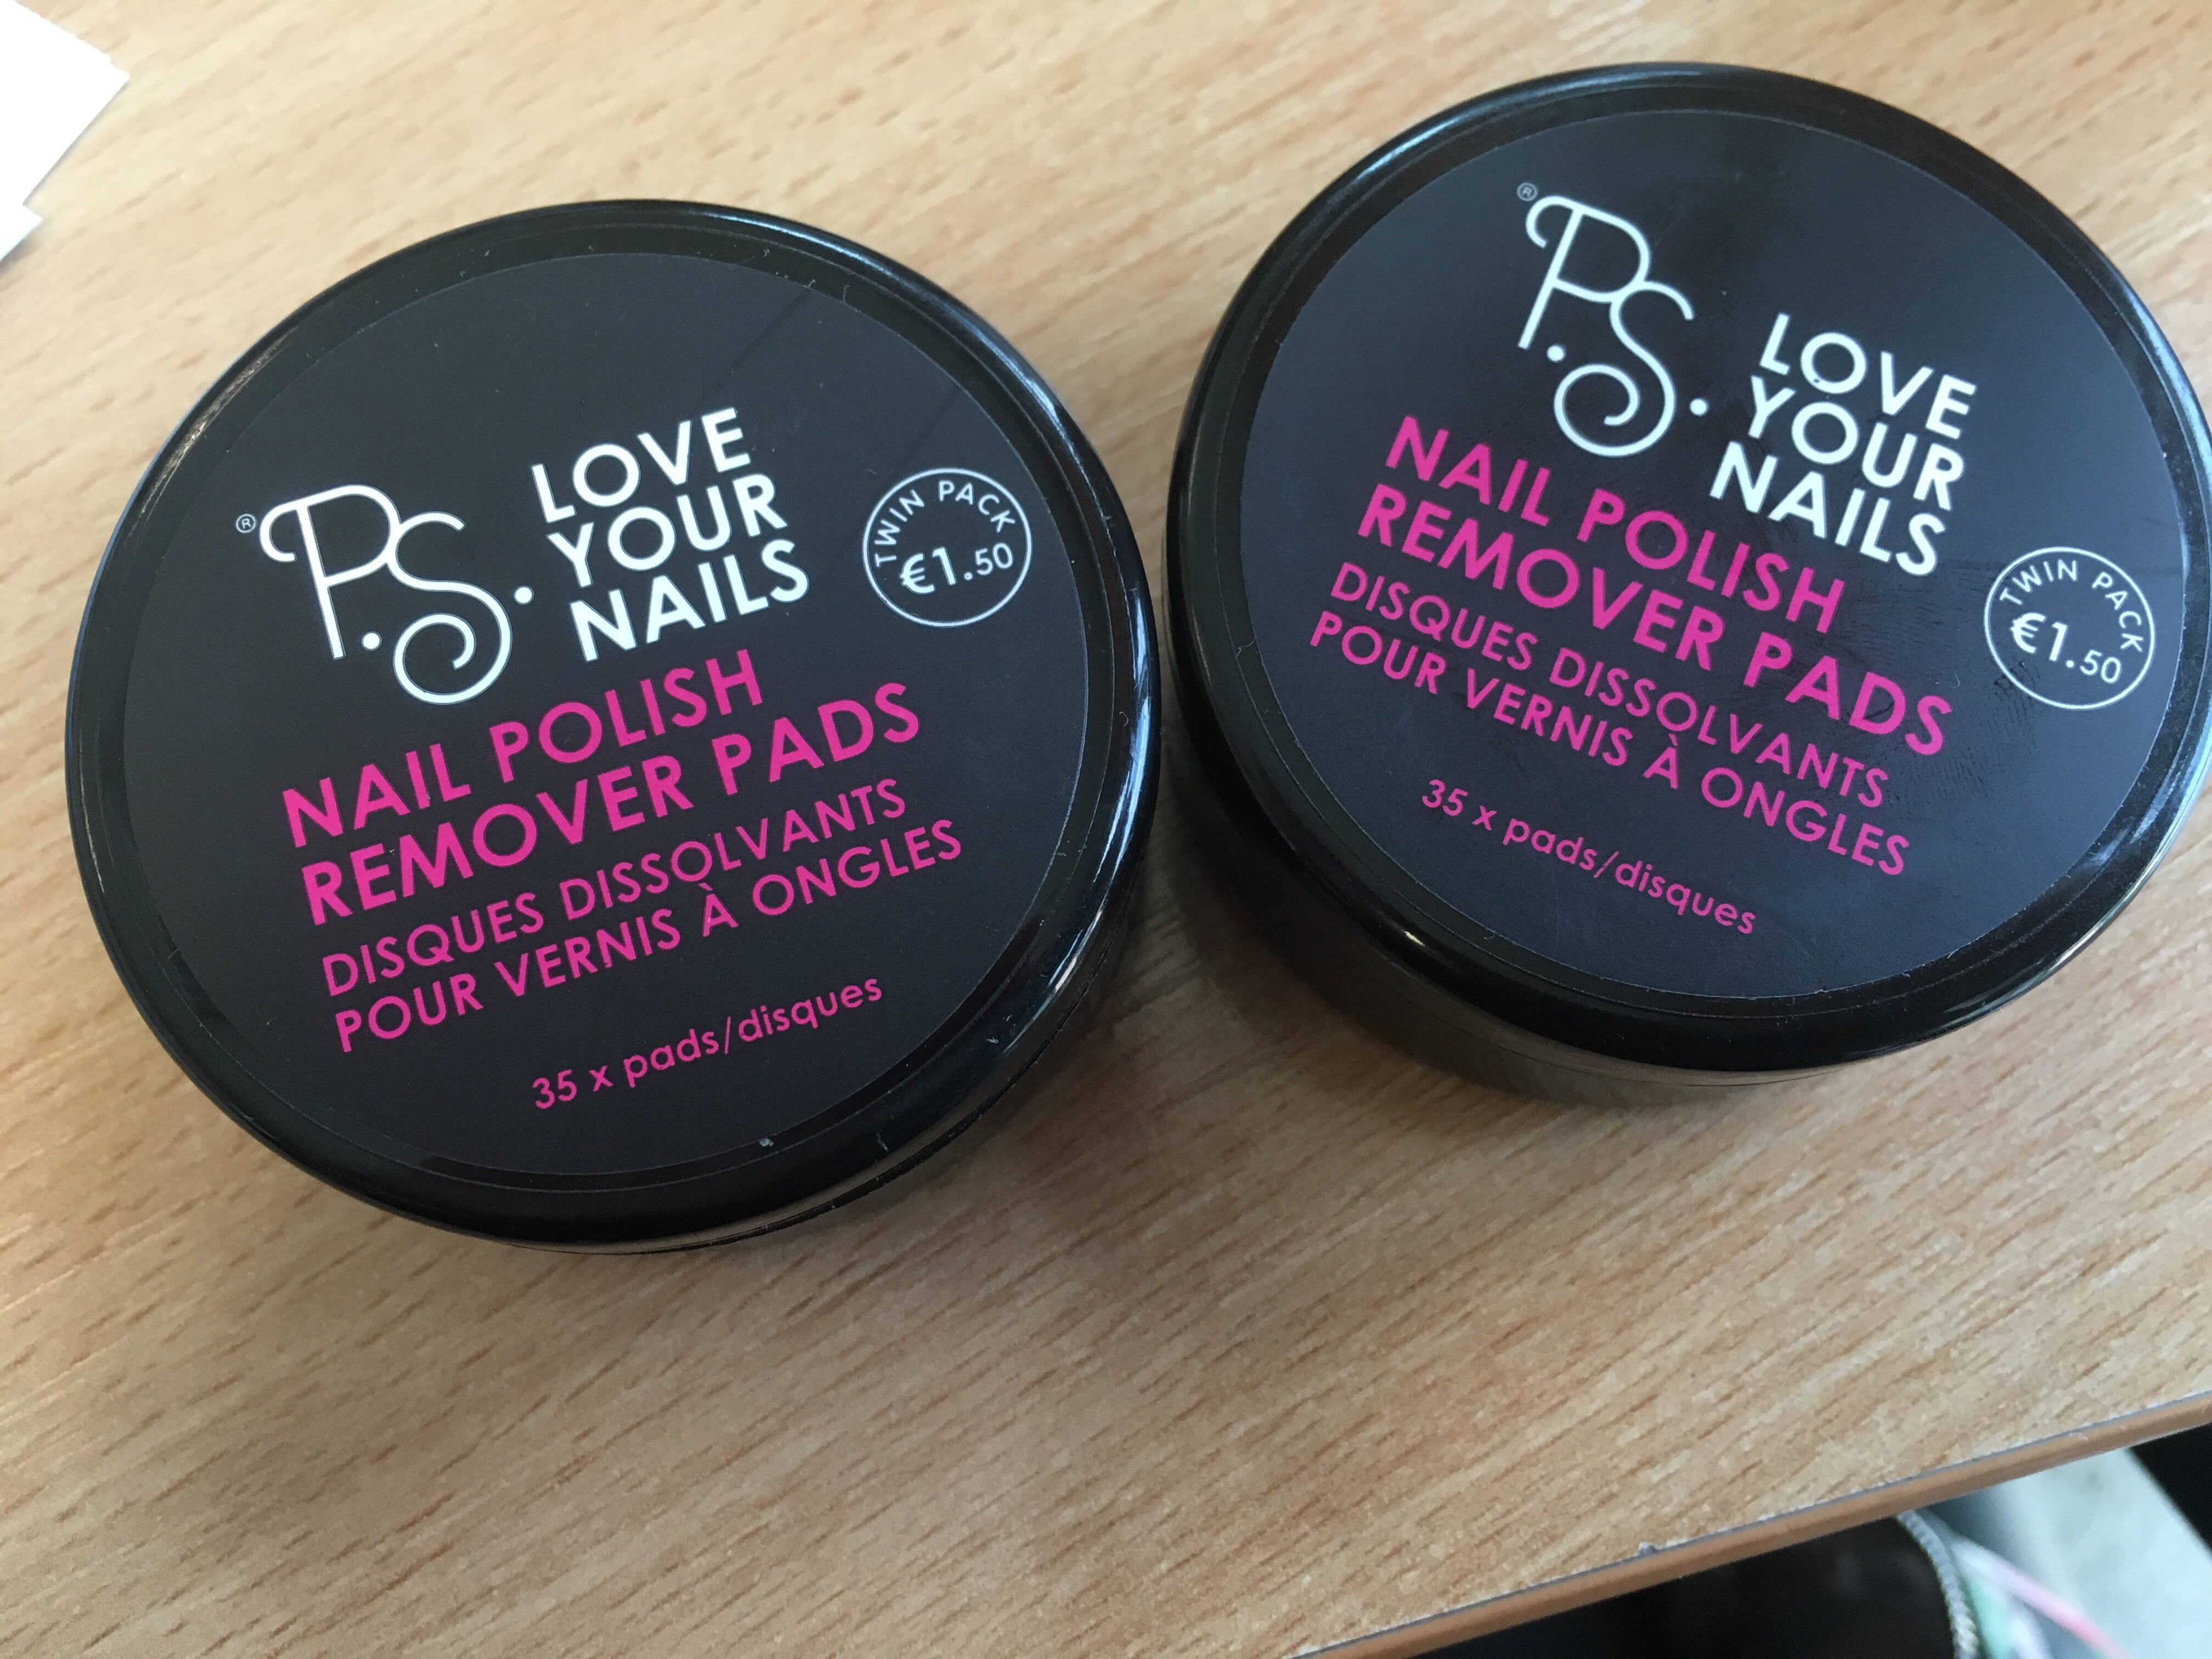 P.S Love Your Nails, Nail Polish Remover Pads – Cassmadaboutfashion